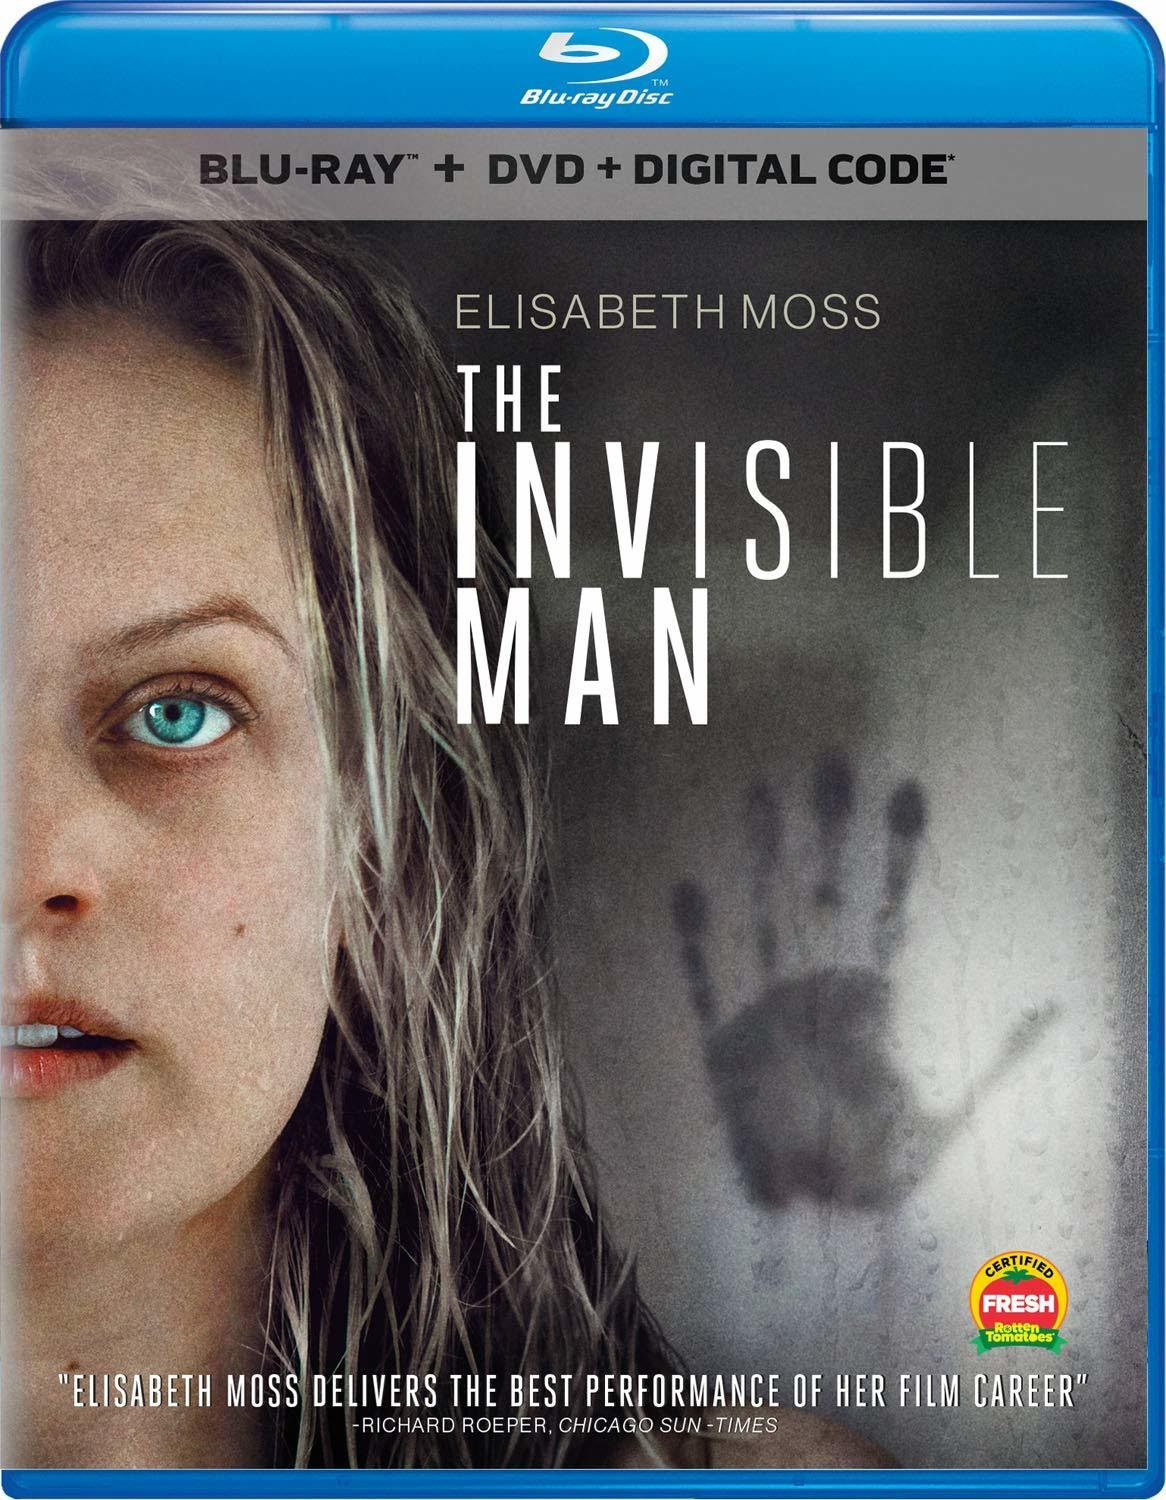 The Invisible Man (2020) poster image